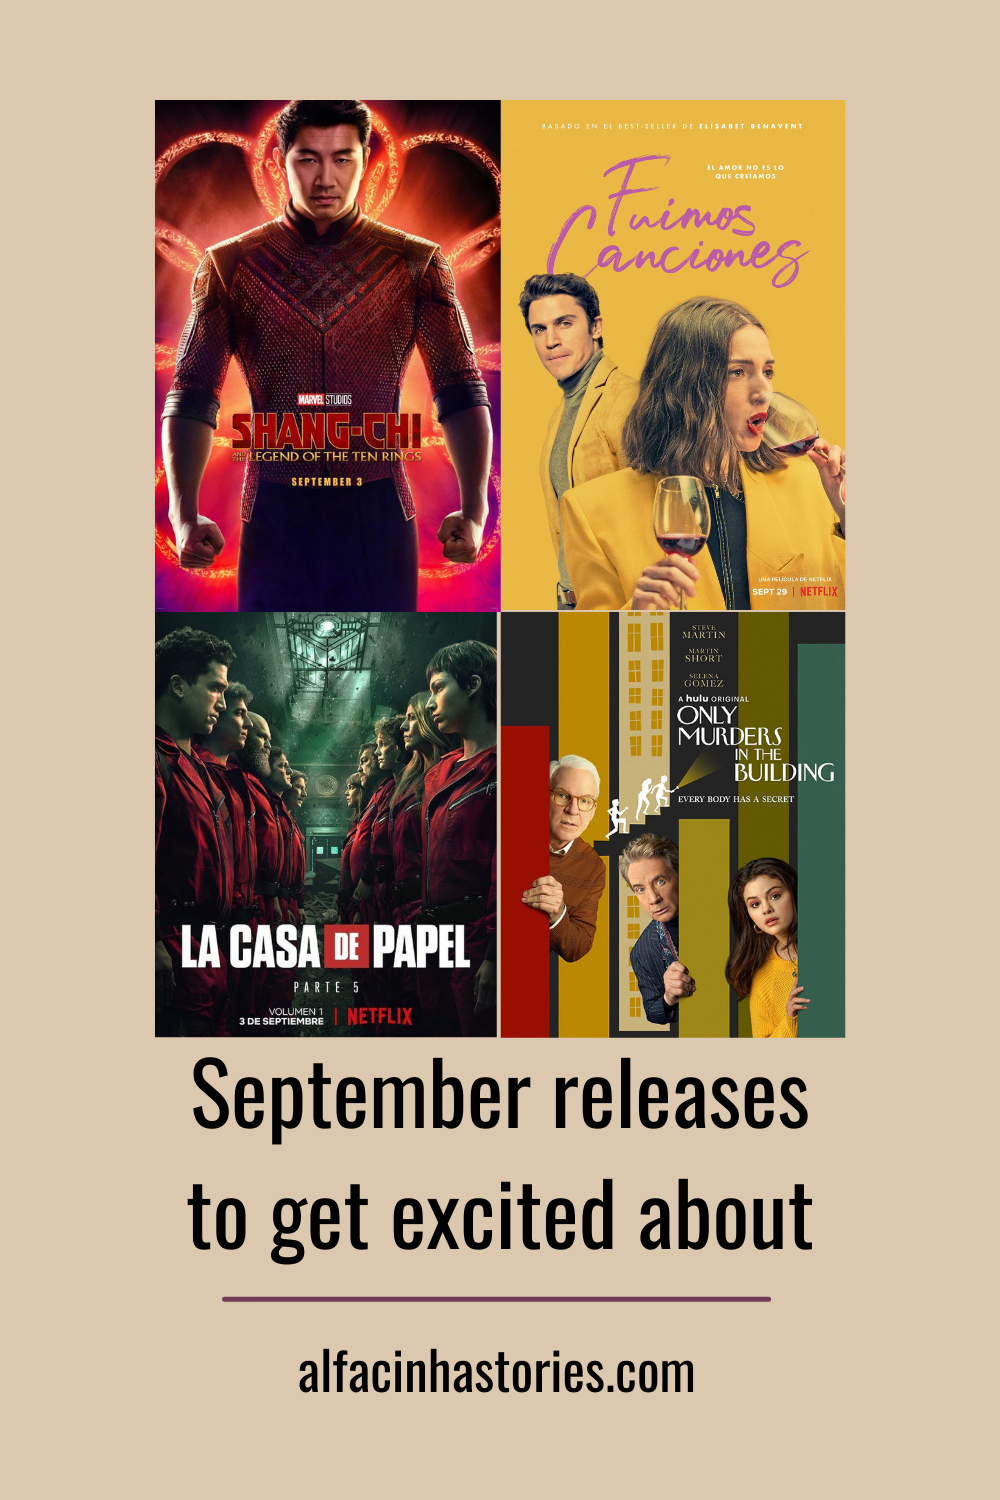 September releases to get excited about